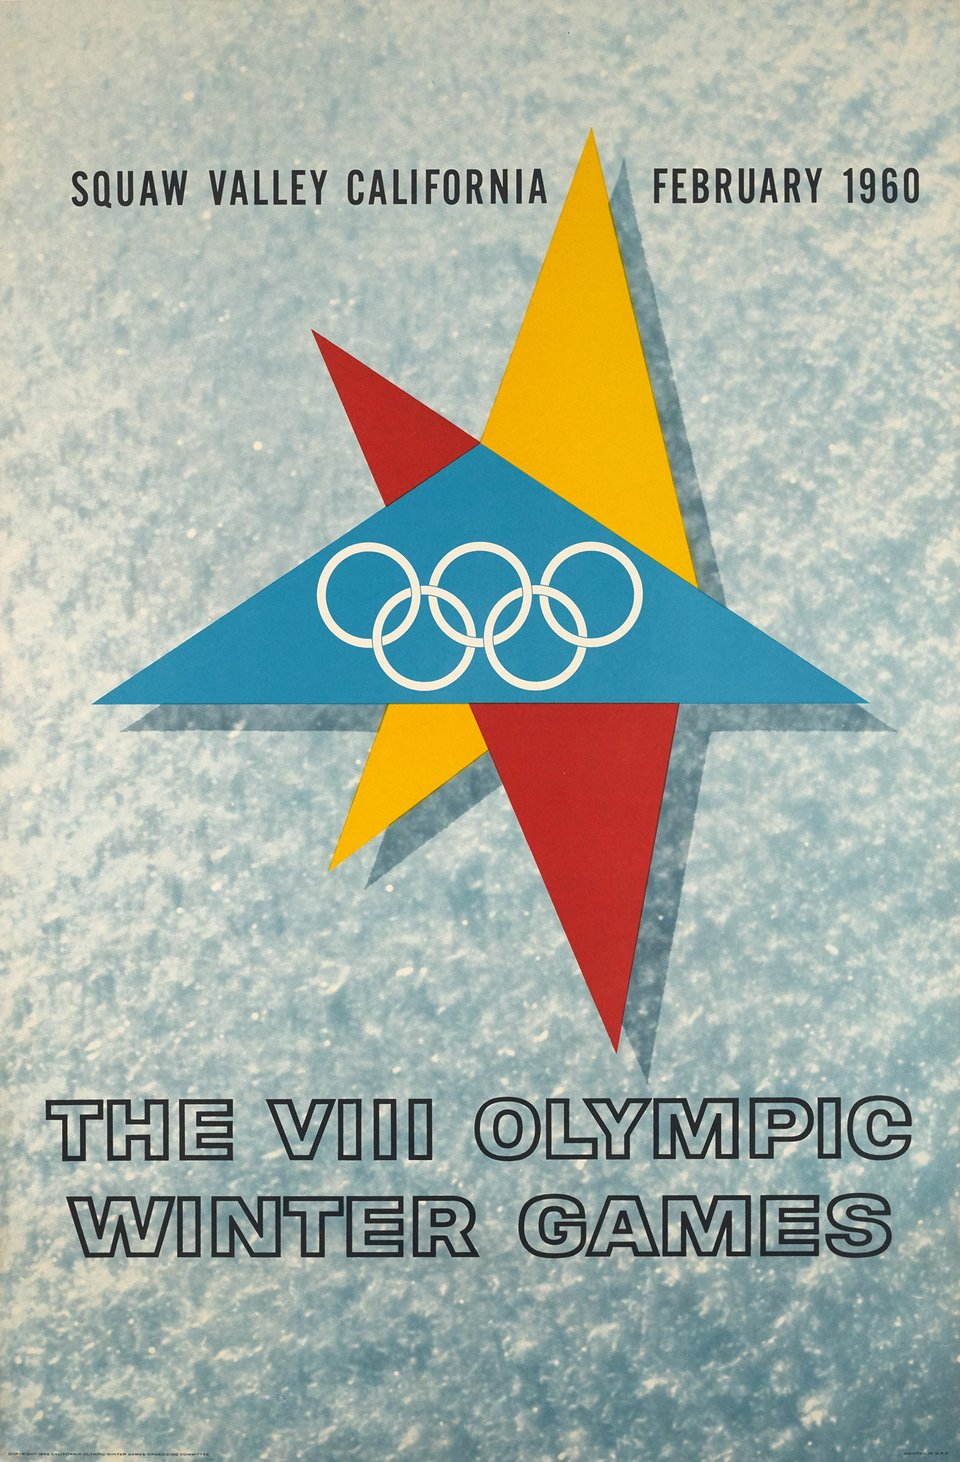 Squaw Valley 1960, The VIII Olympic Winter Games – Vintage poster – ANONYME – 1958